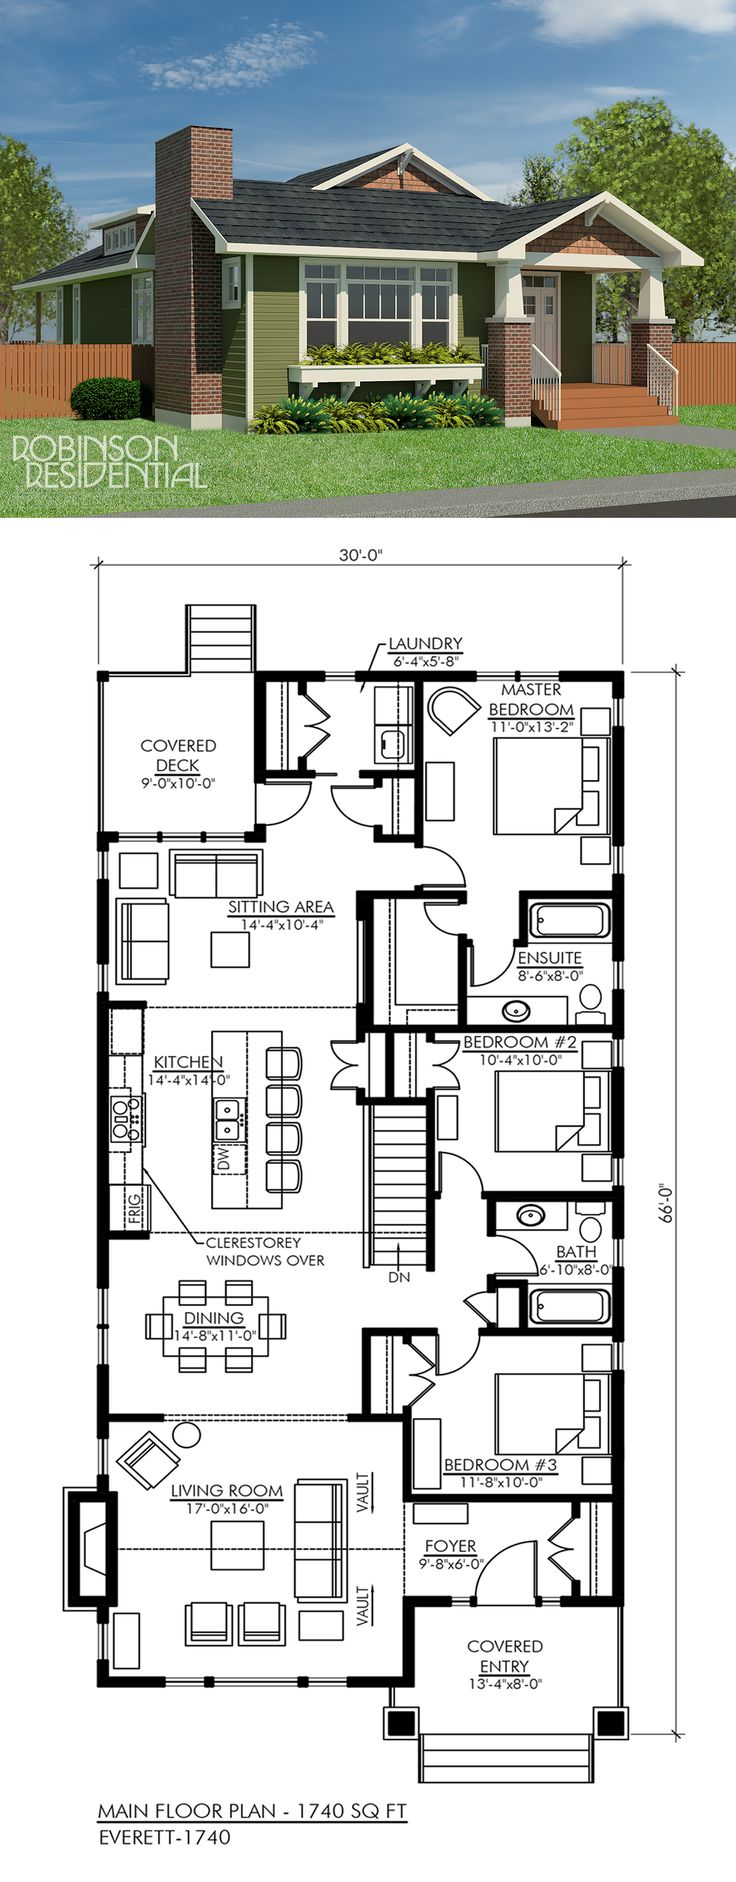 The Craftsman Everett-1740 is a 1-storey house featuring:  Authentic craftsman styled exterior Covered front porch Vaulted ceiling in living room Bright kitchen with raised ceiling and clerestory windows Private master suite with ensuite and walk-in closet Main floor laundry 3 bedrooms, 2 baths